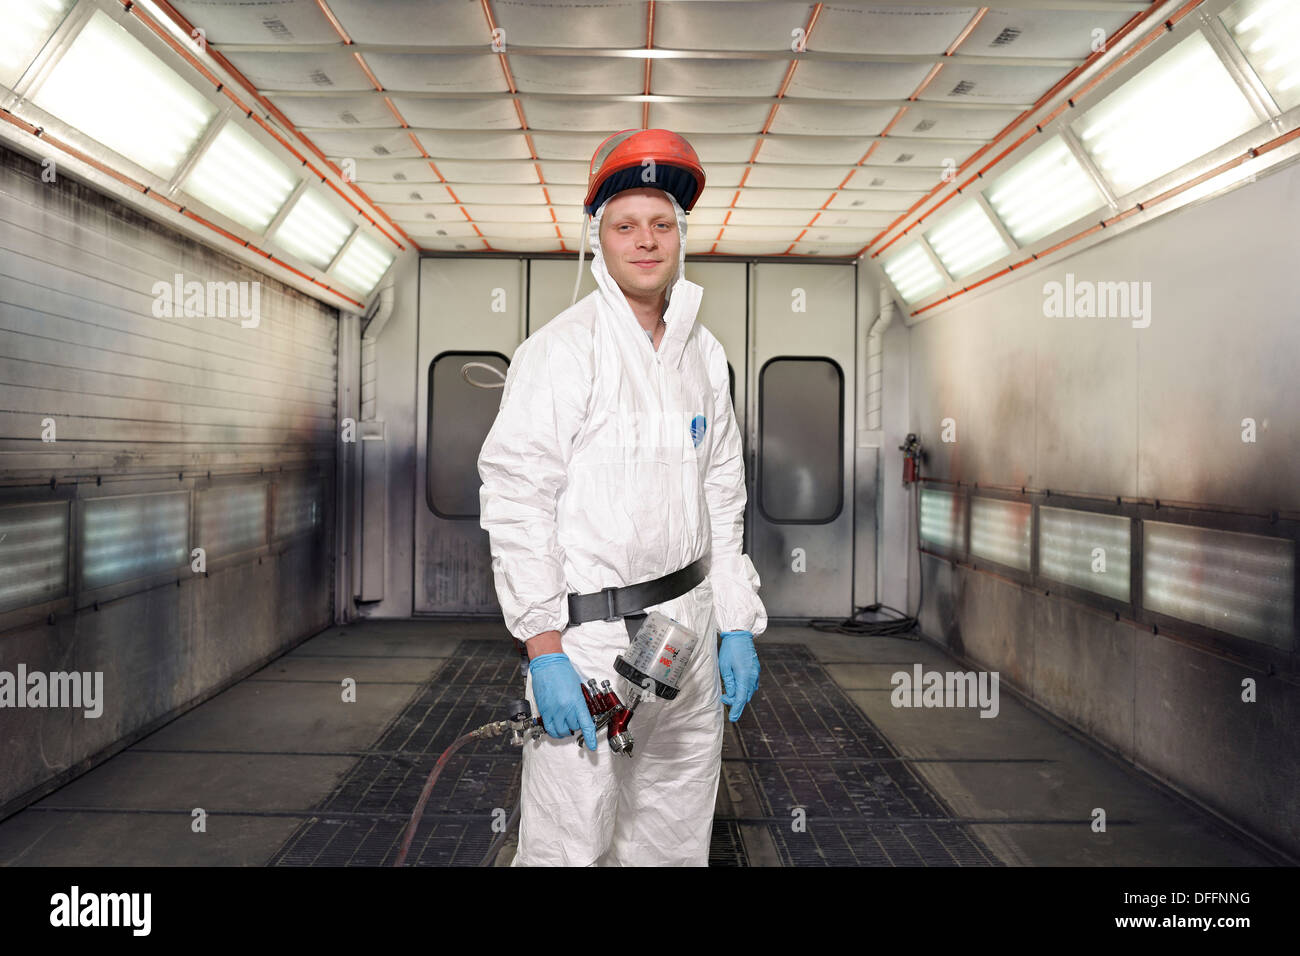 Car Spray Painter In Work Overalls With Spray Paint Gun At An Stock Photo Royalty Free Image